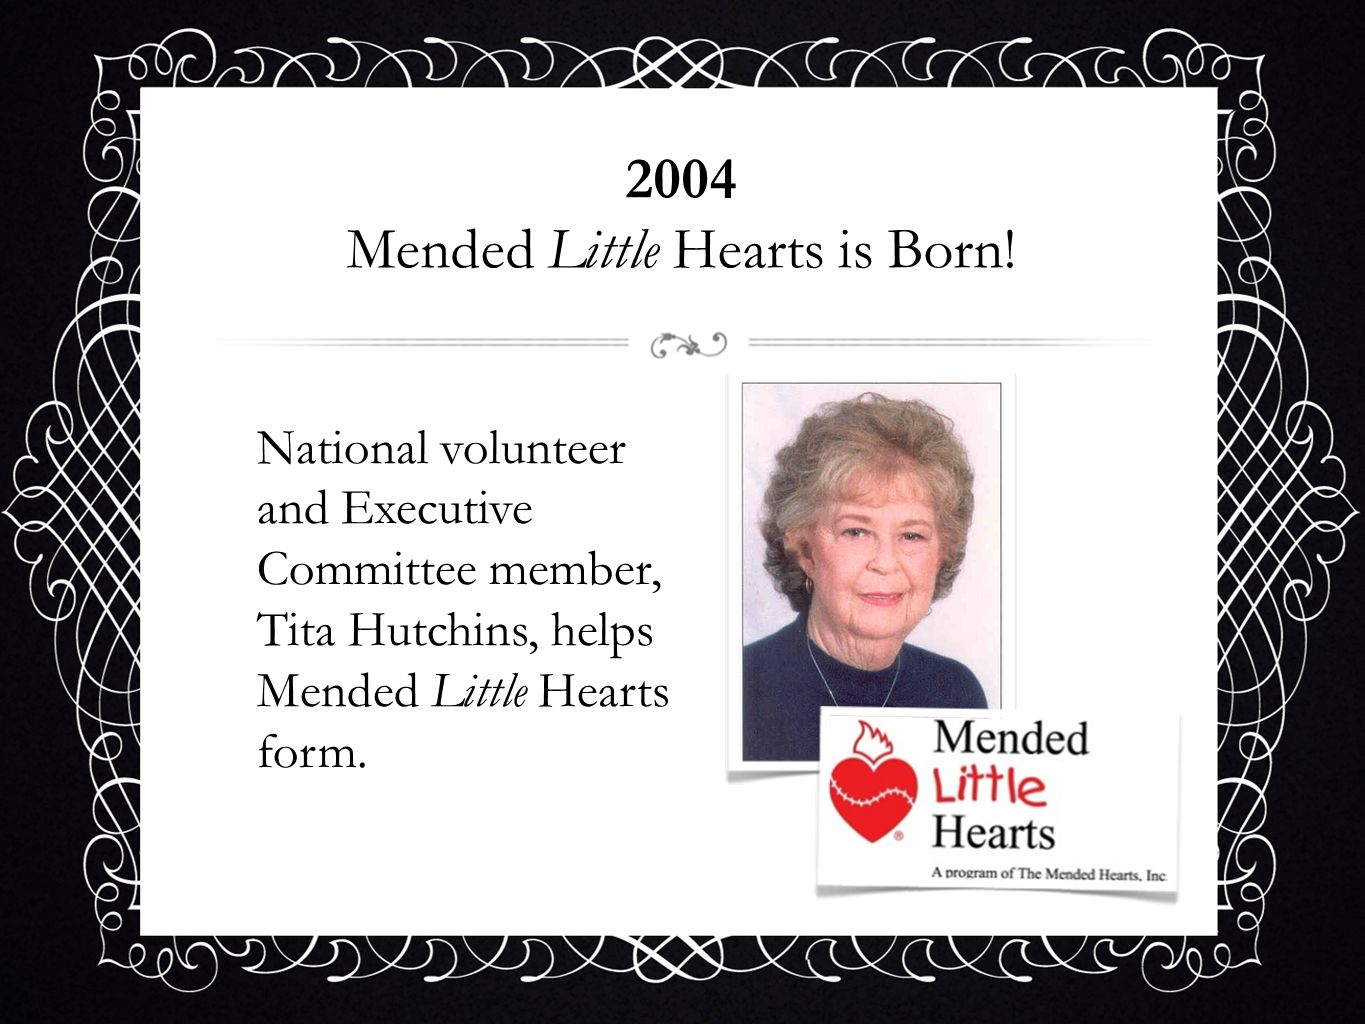 2004 Mended Little Hearts is Born!